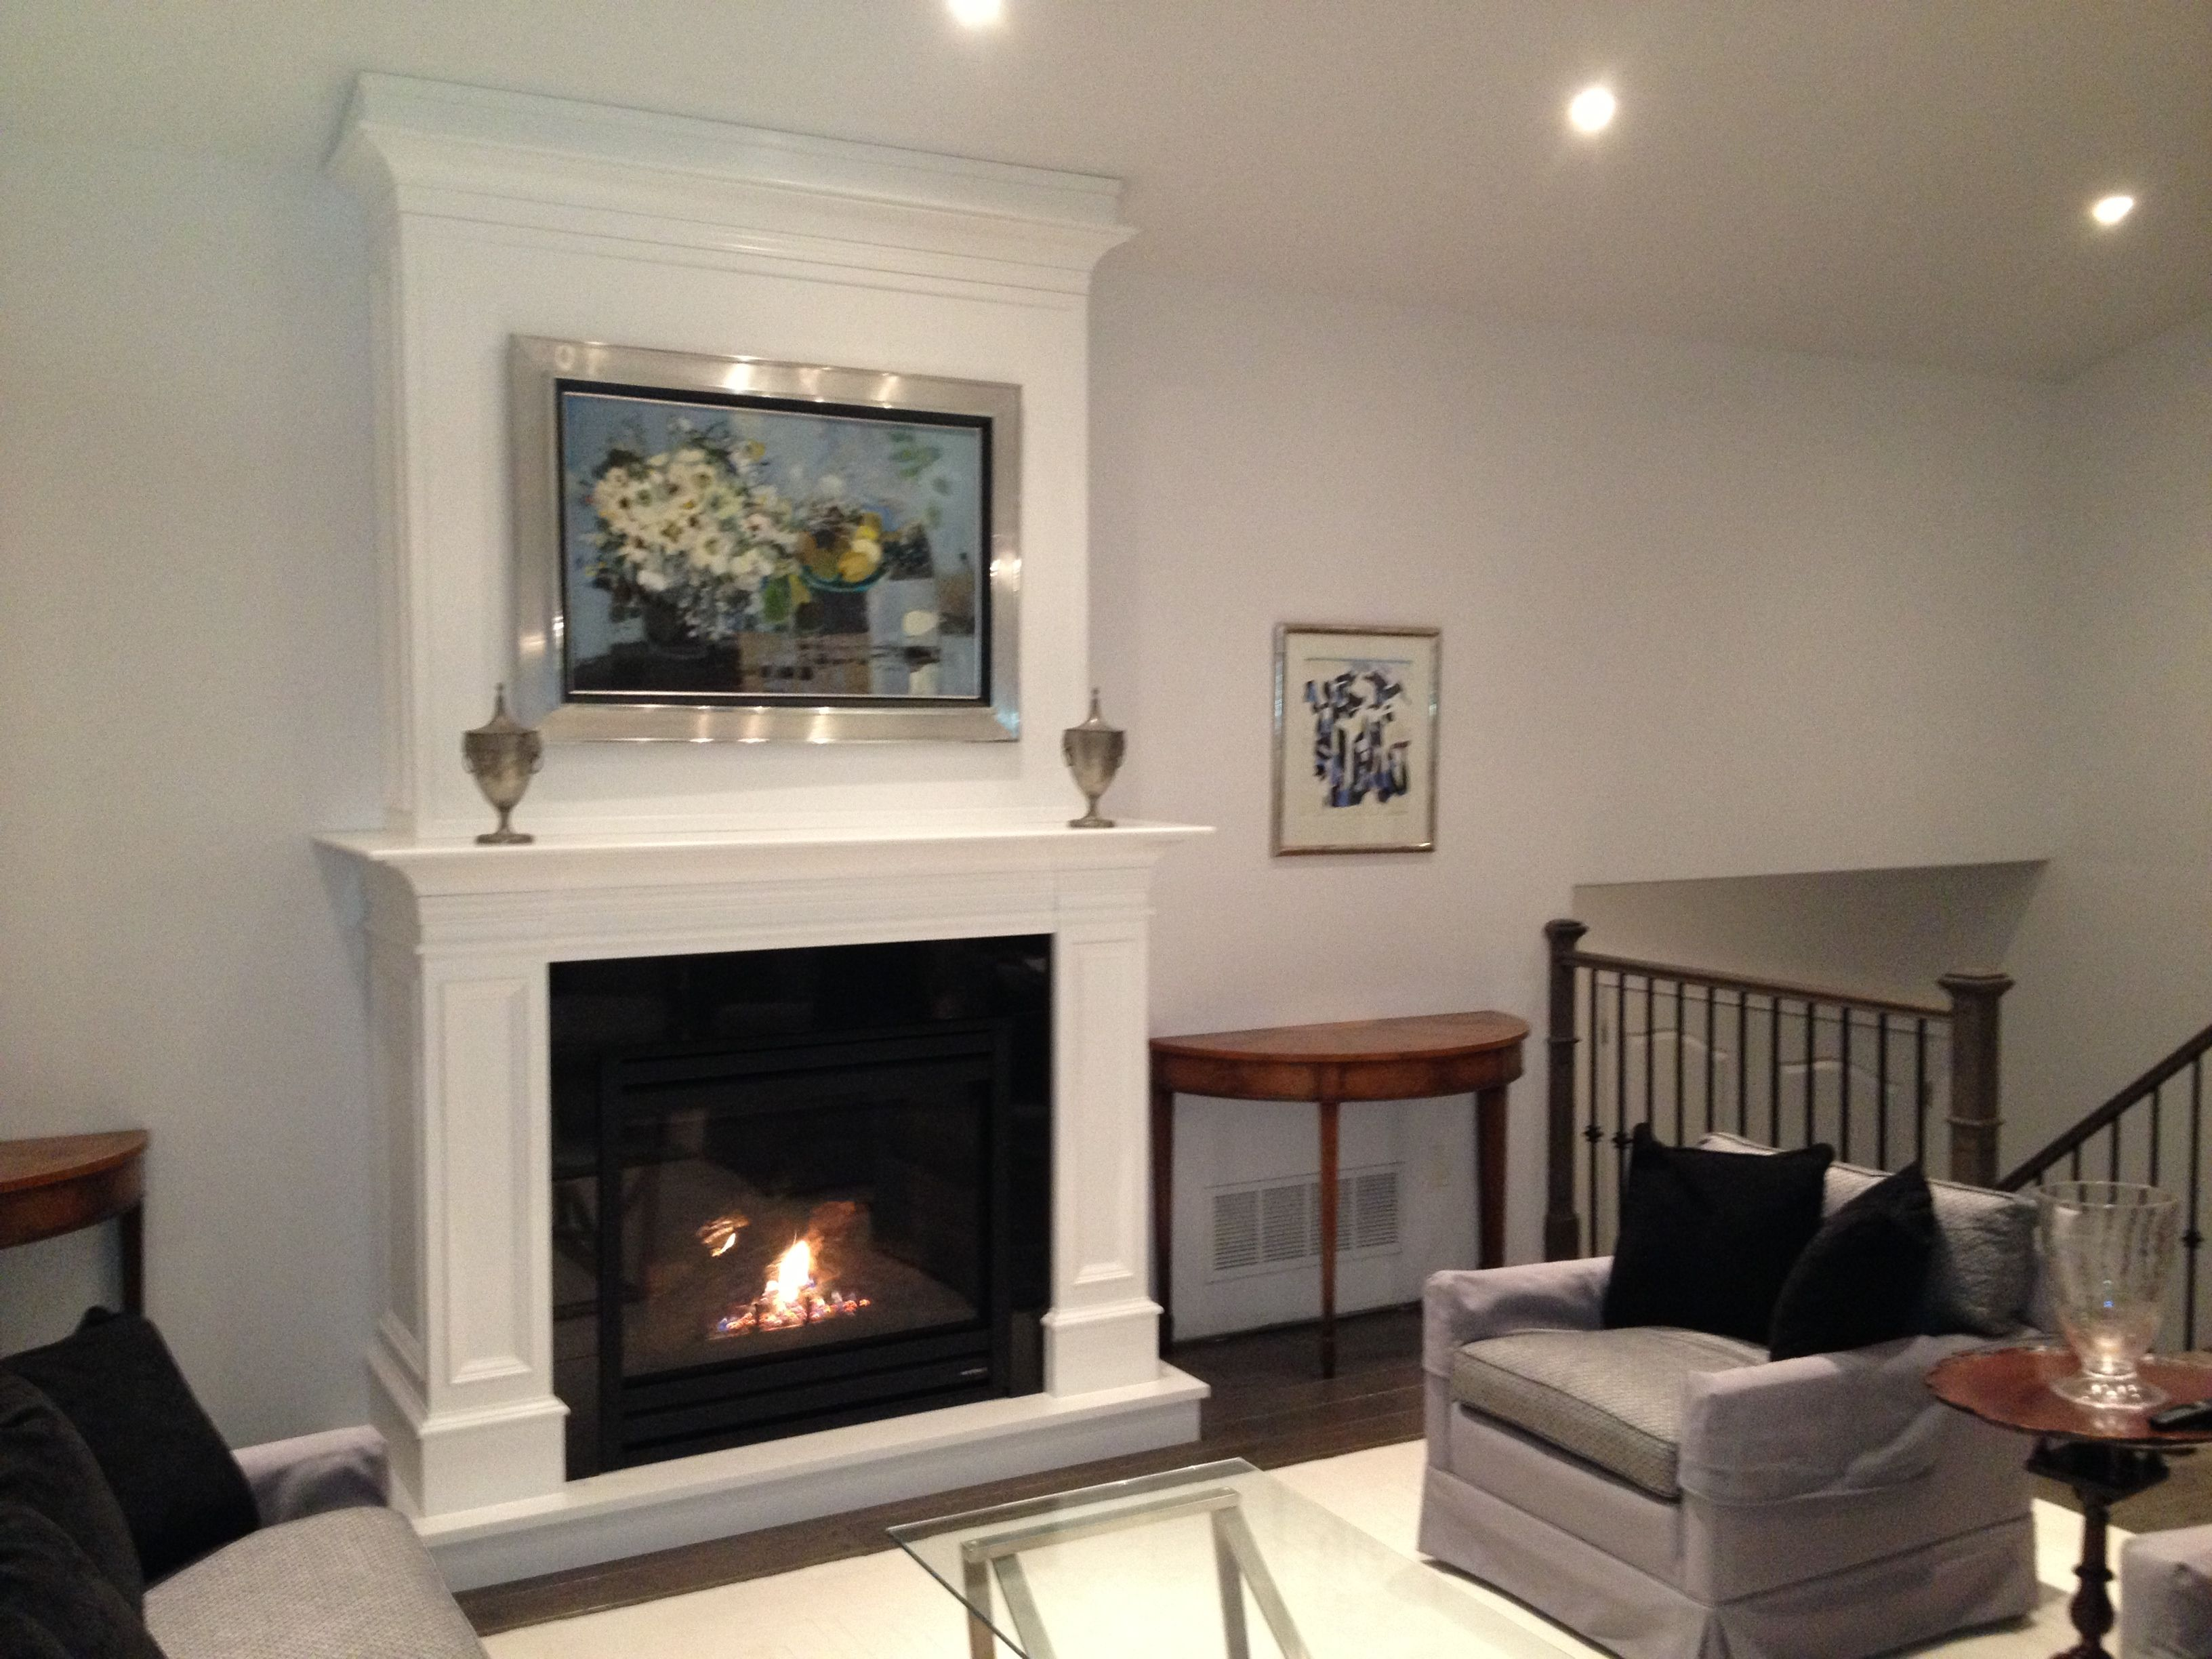 Heat N Glo Gas Fireplace Custom Cabinet And Heat N Glo Slimline 550 Gas Fireplace